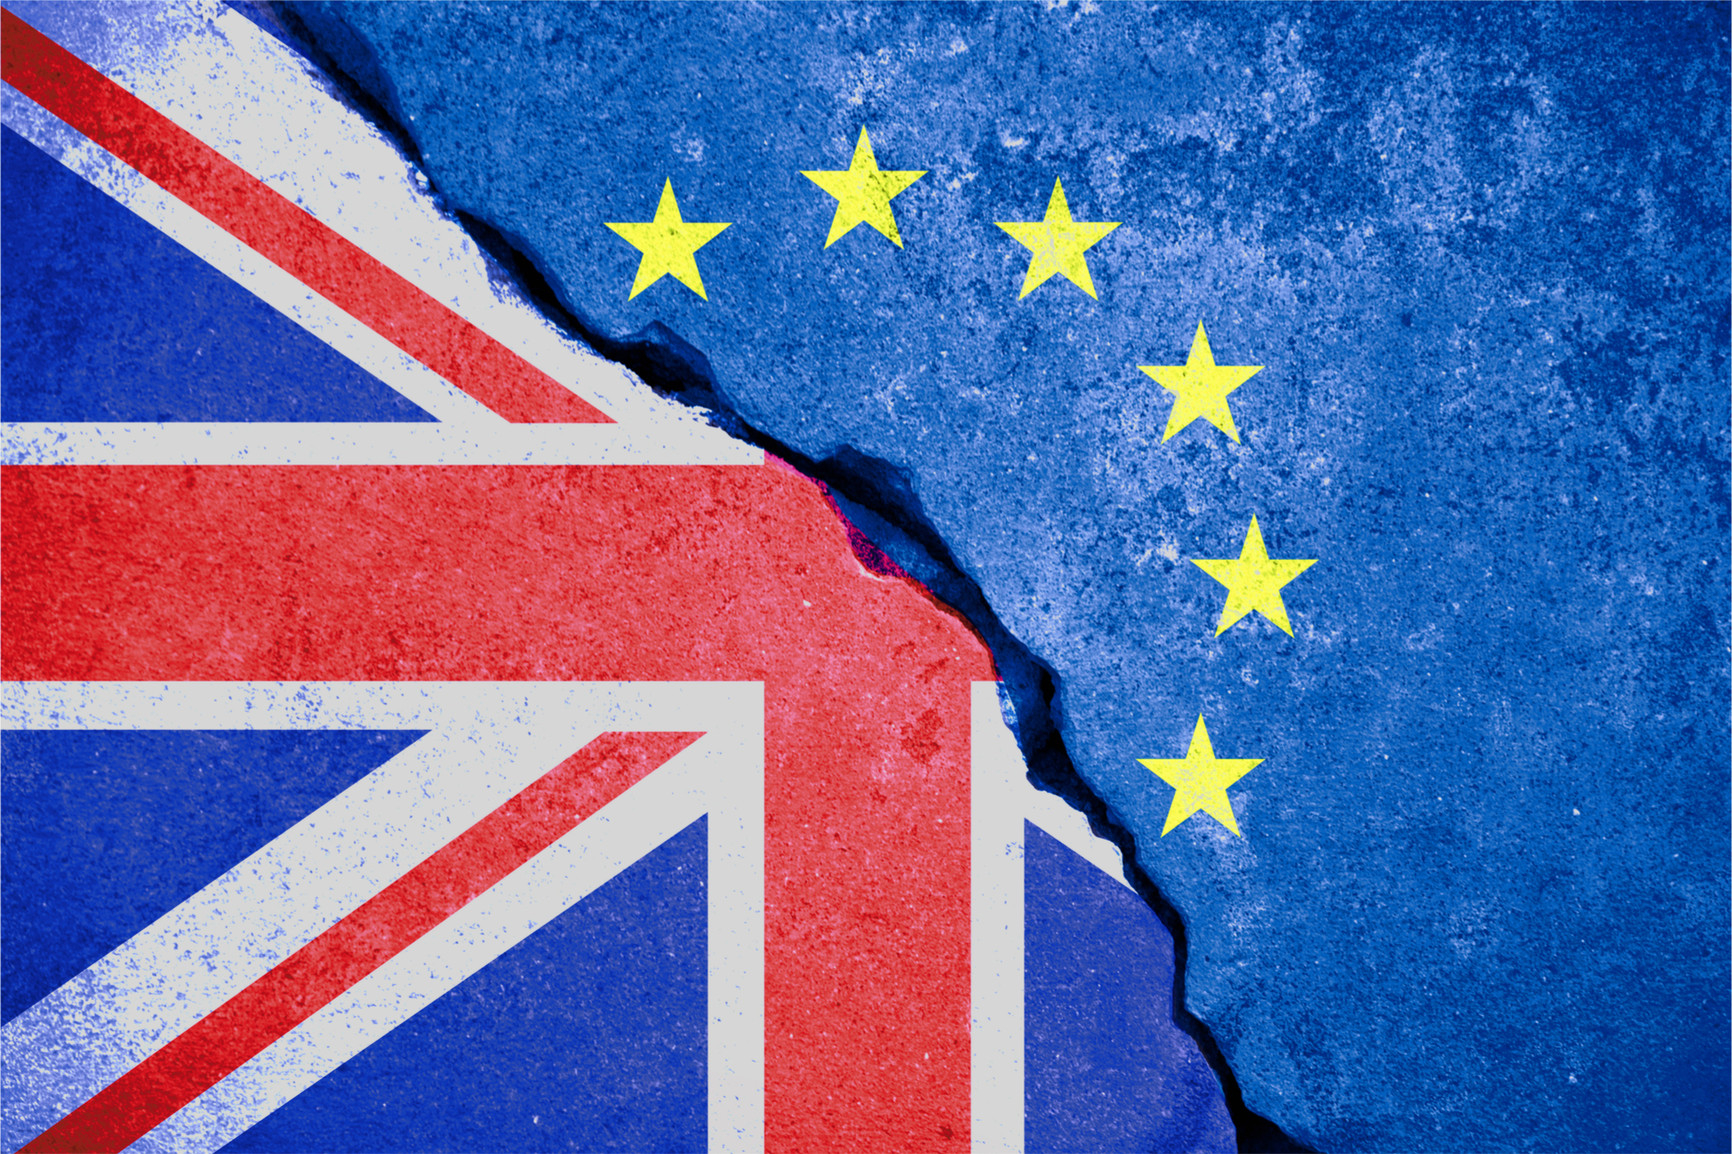 Your intellectual property after a hard BREXIT?